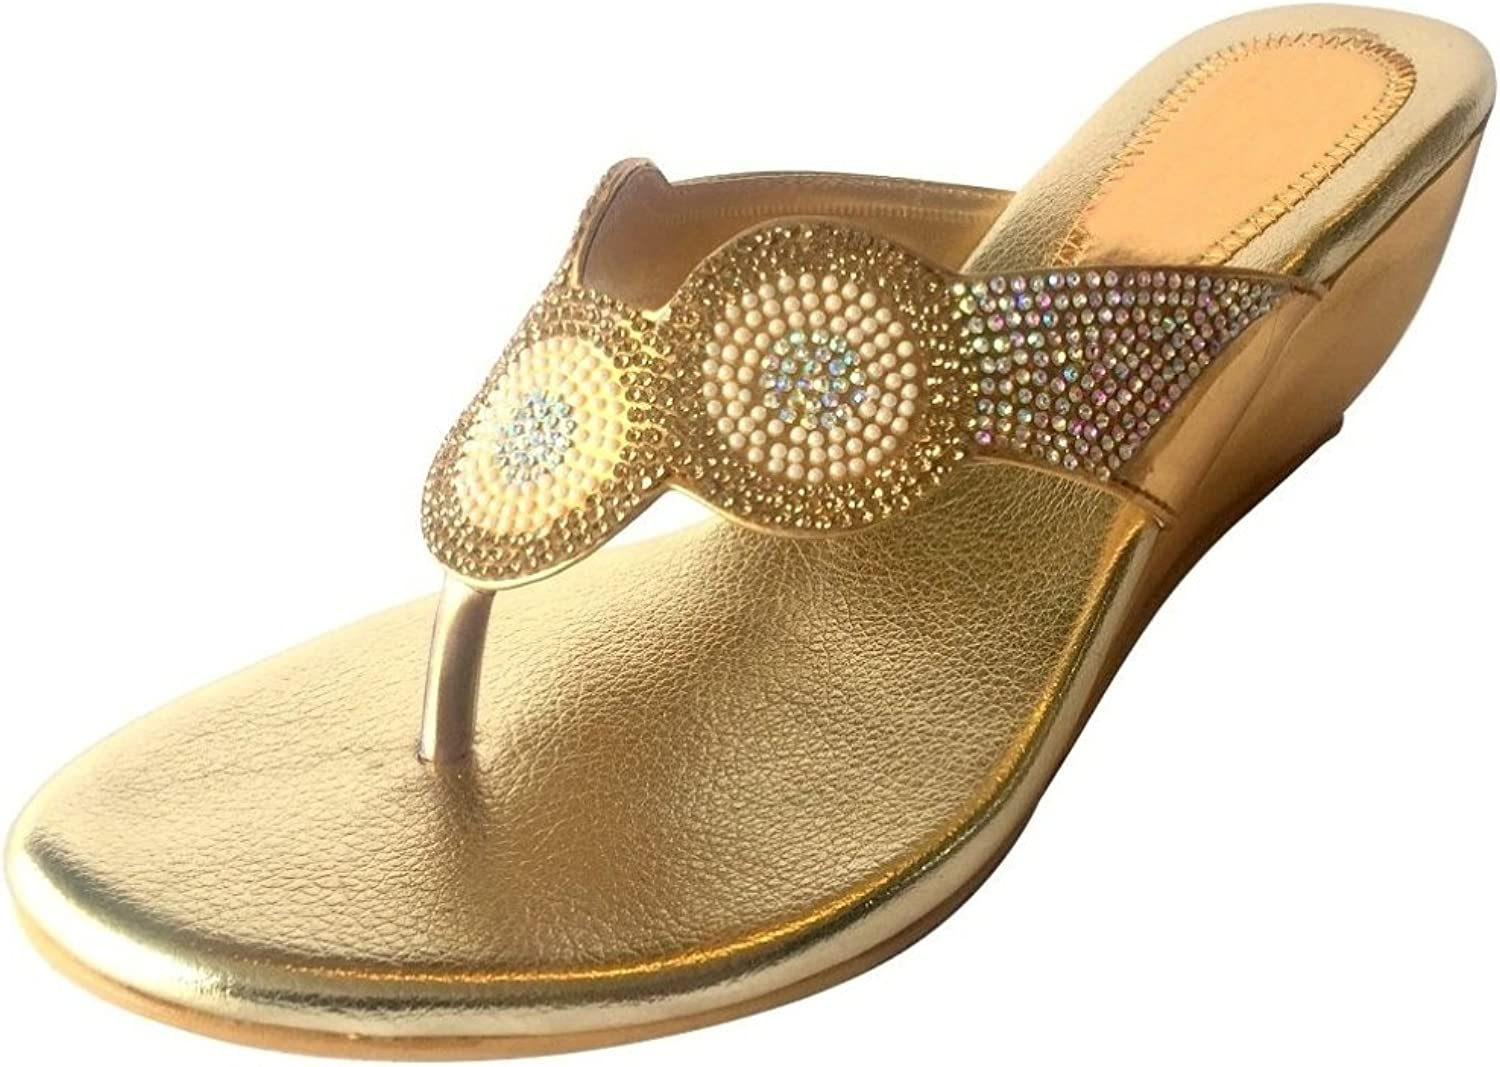 Step n Style Women shoes Rhinestone Crystal Bridal Sandals Slip On Wedge Indian Ethnic shoes gold